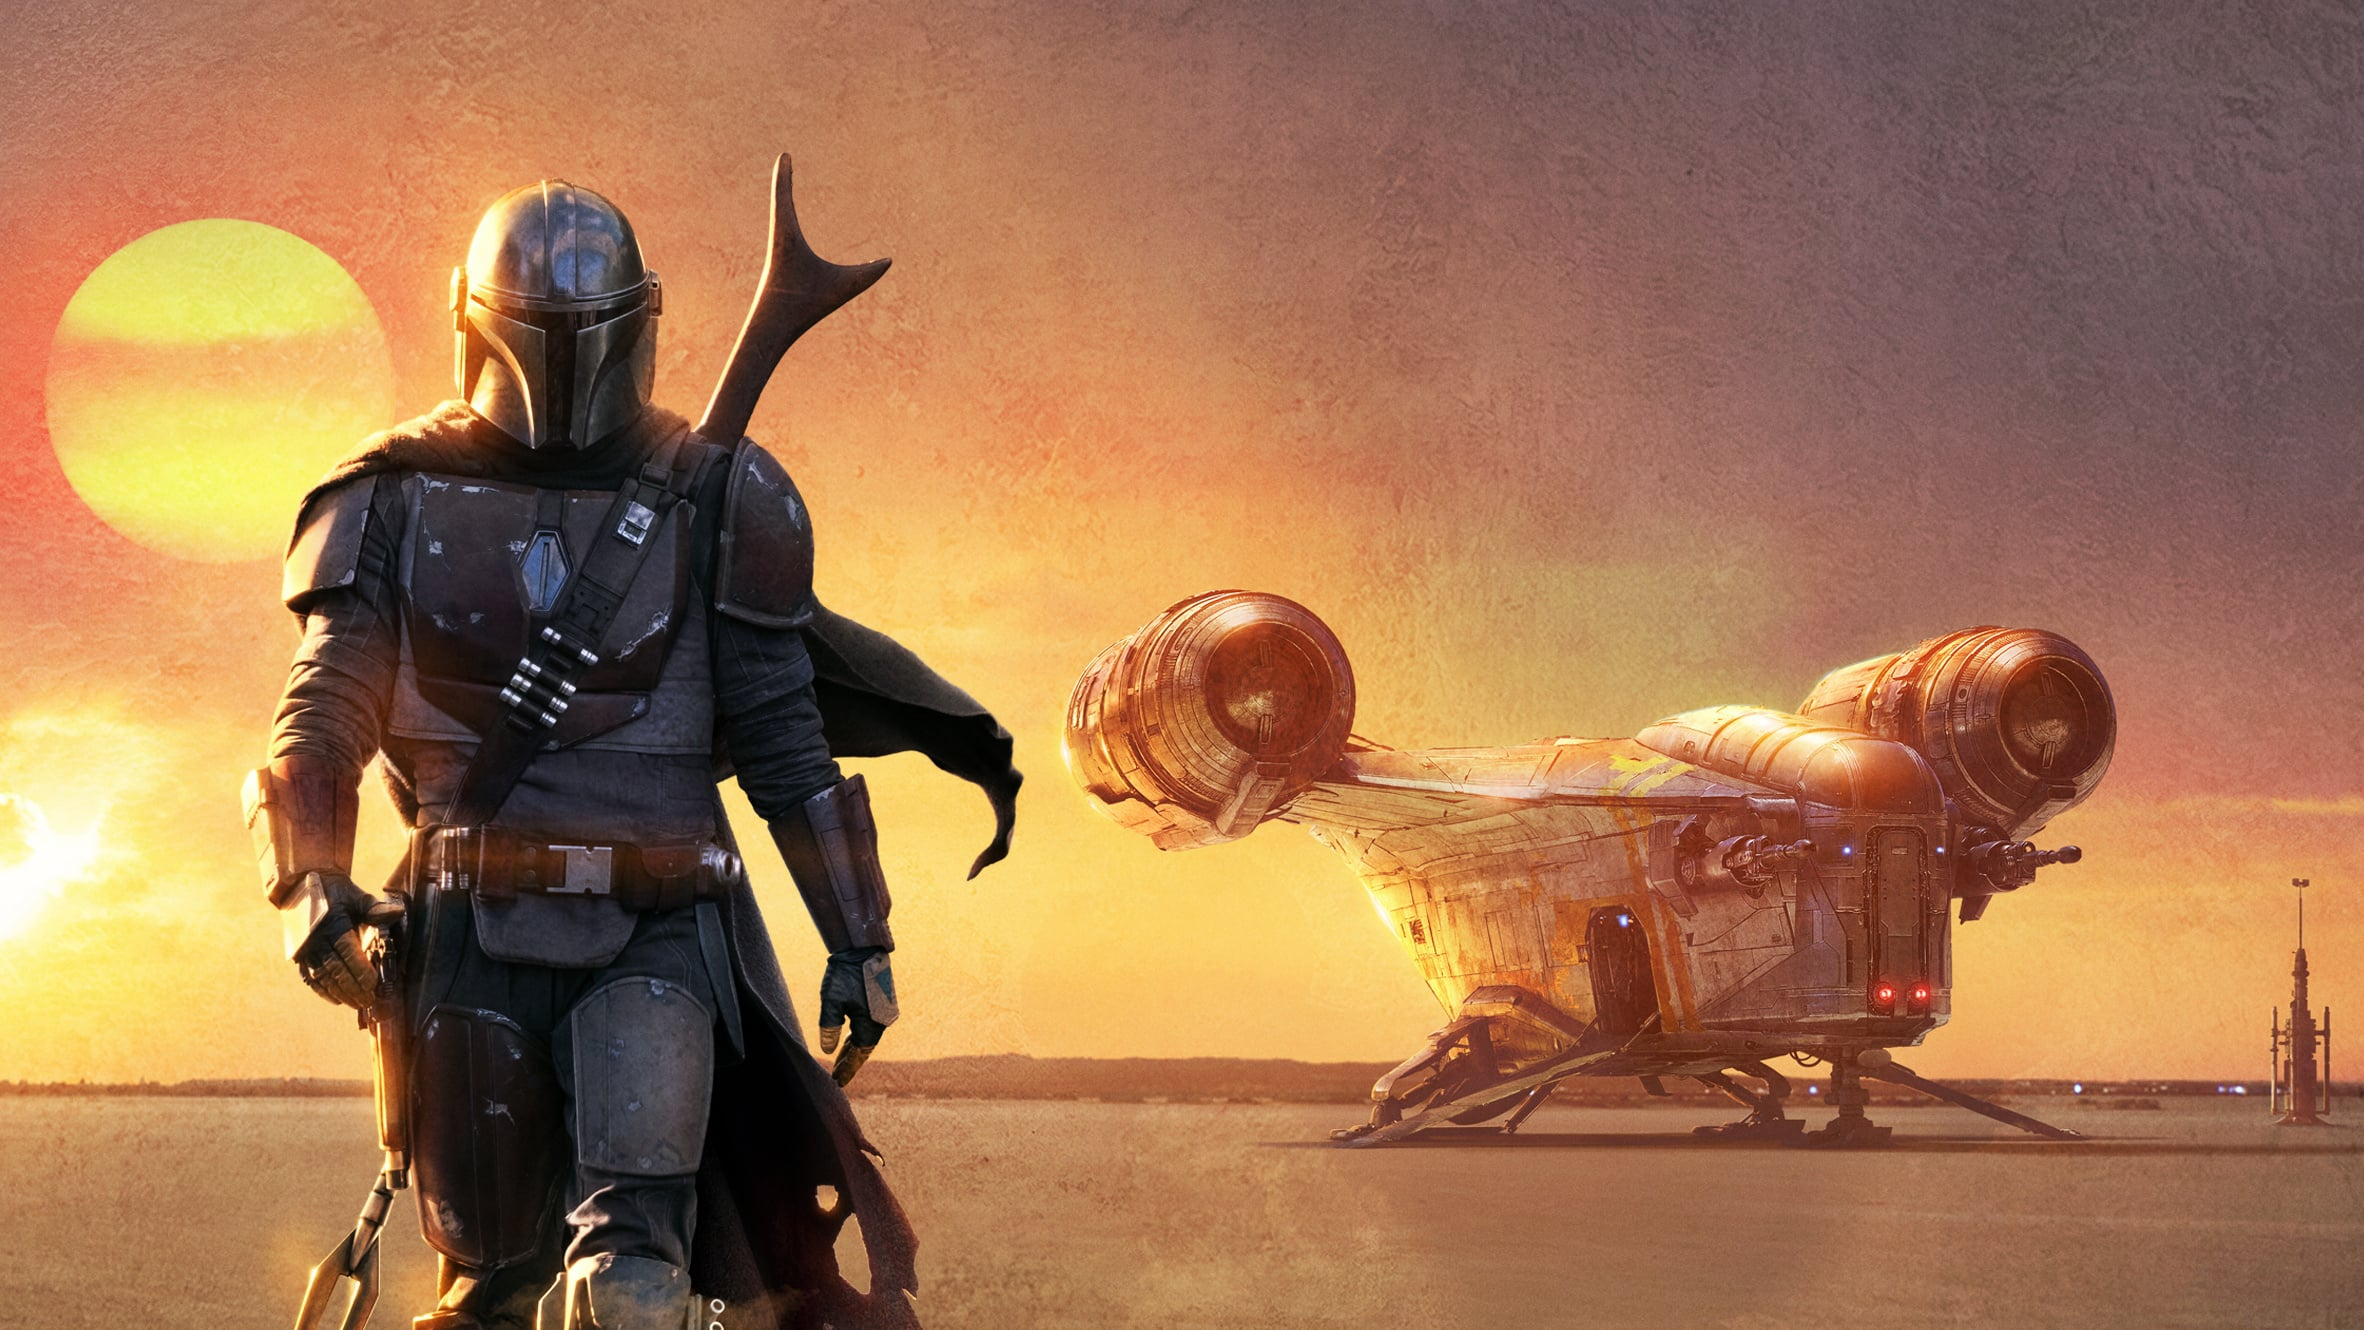 8 Shows Like The Mandalorian to Watch While You Wait for the Next Episode